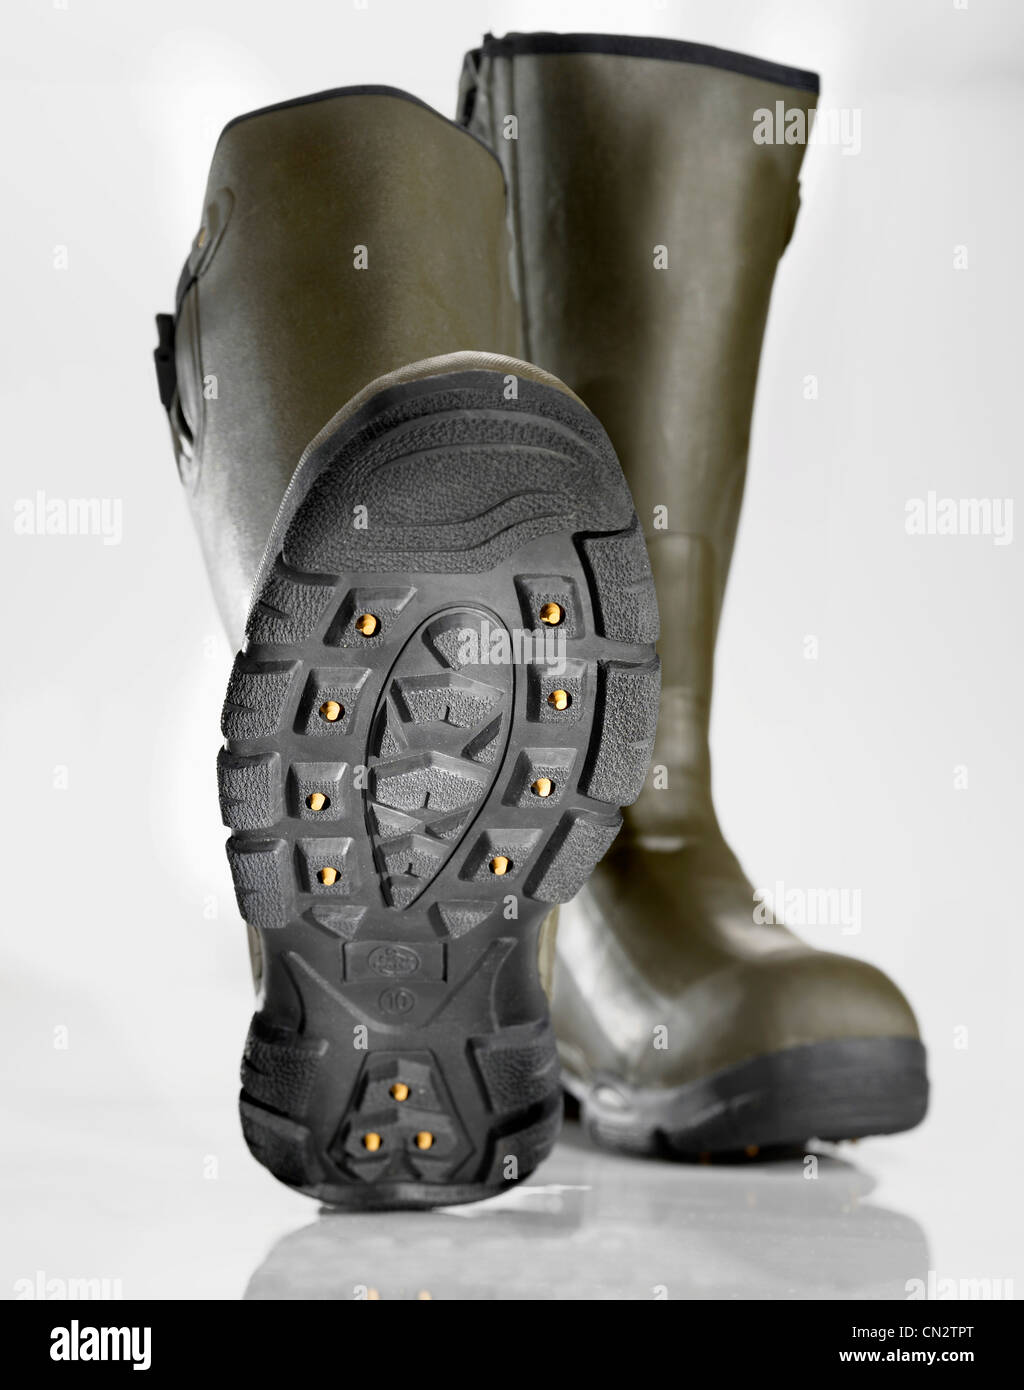 Pair of Boots With Spikes - Stock Image